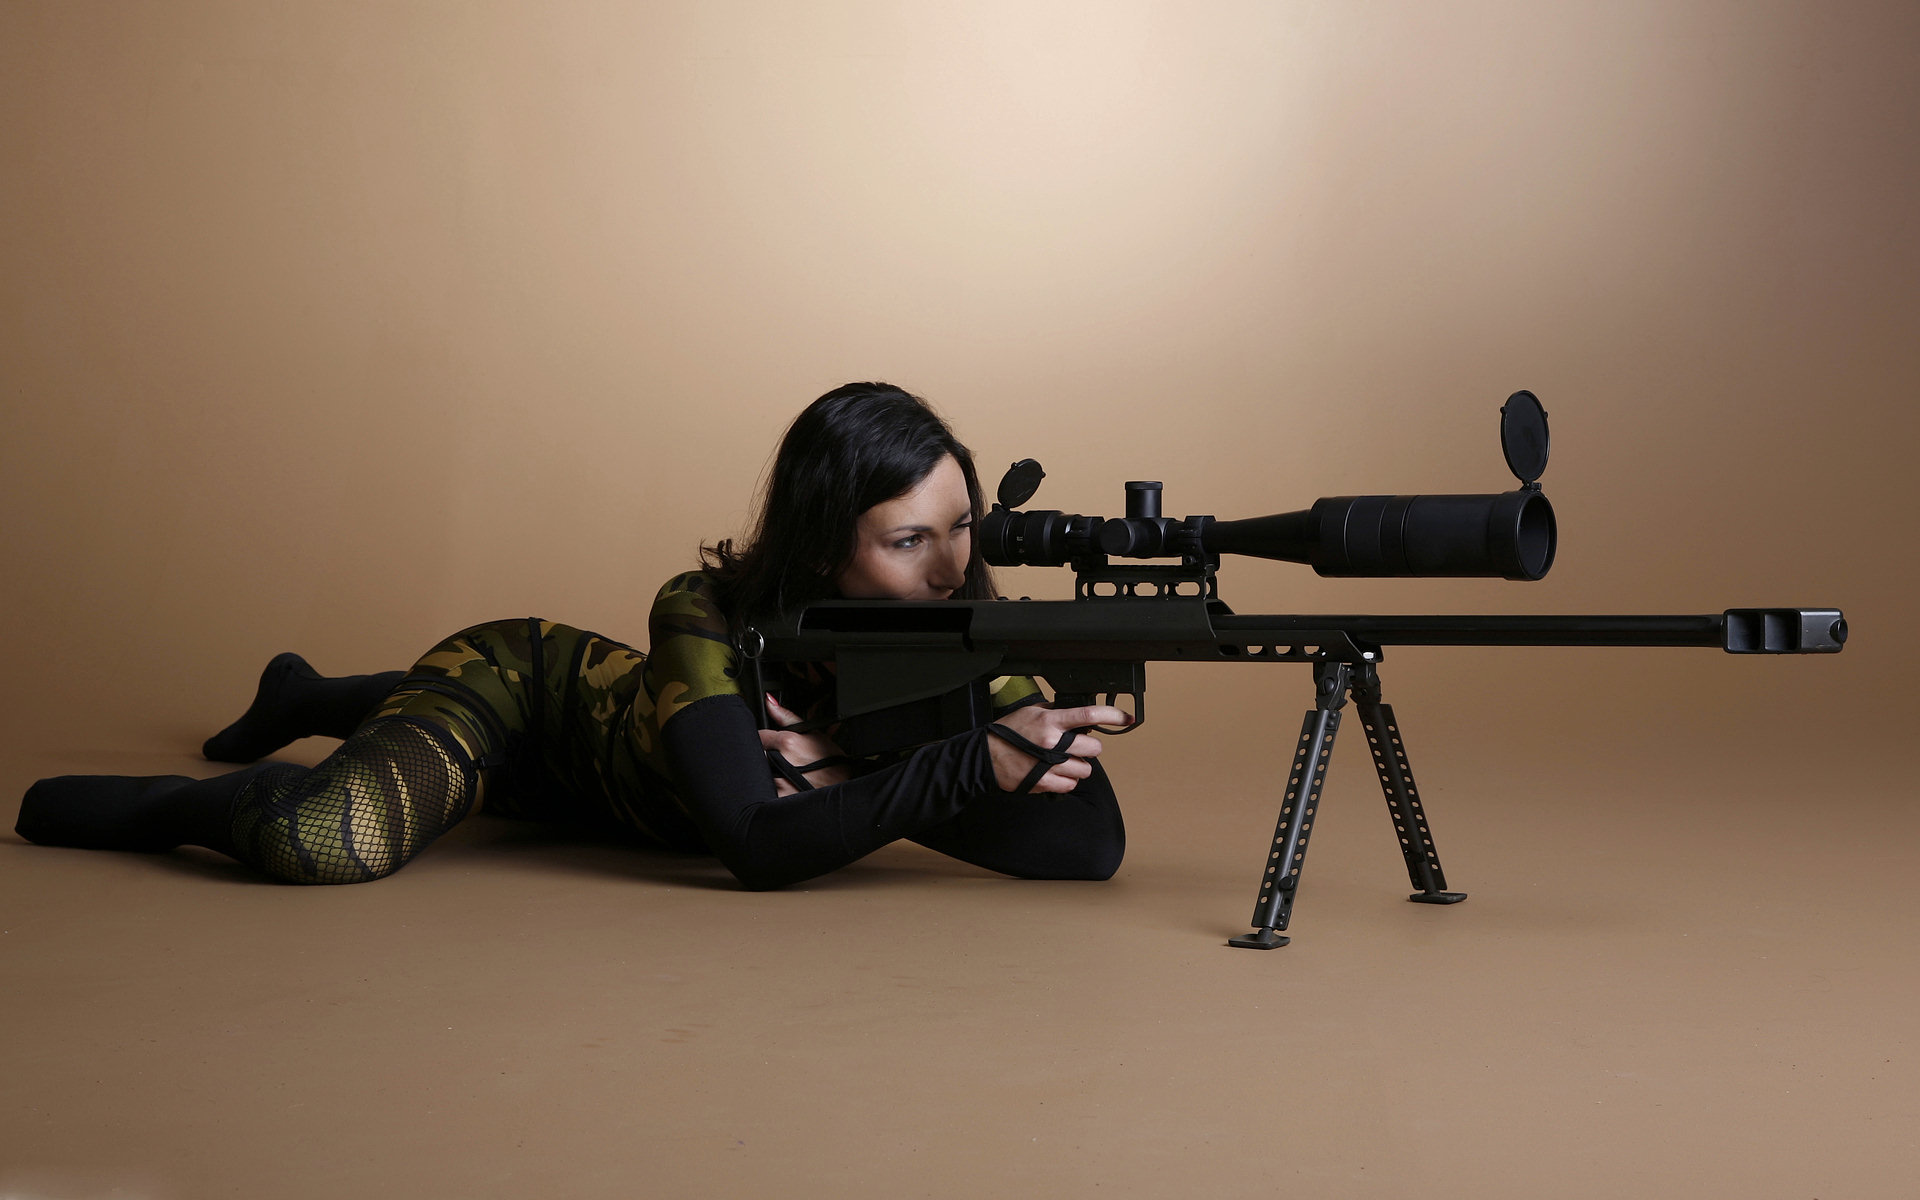 Babe sniper full hd wallpaper and background image 1920x1200 military sniper wallpaper voltagebd Choice Image